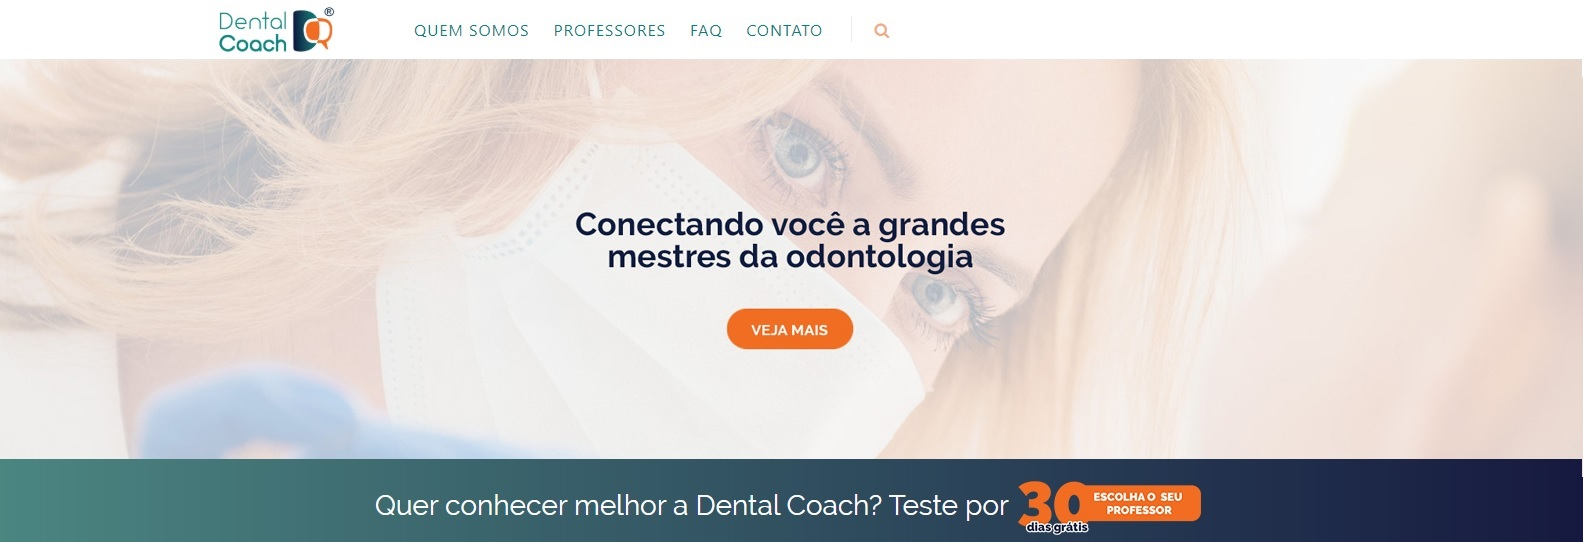 Dental Coach